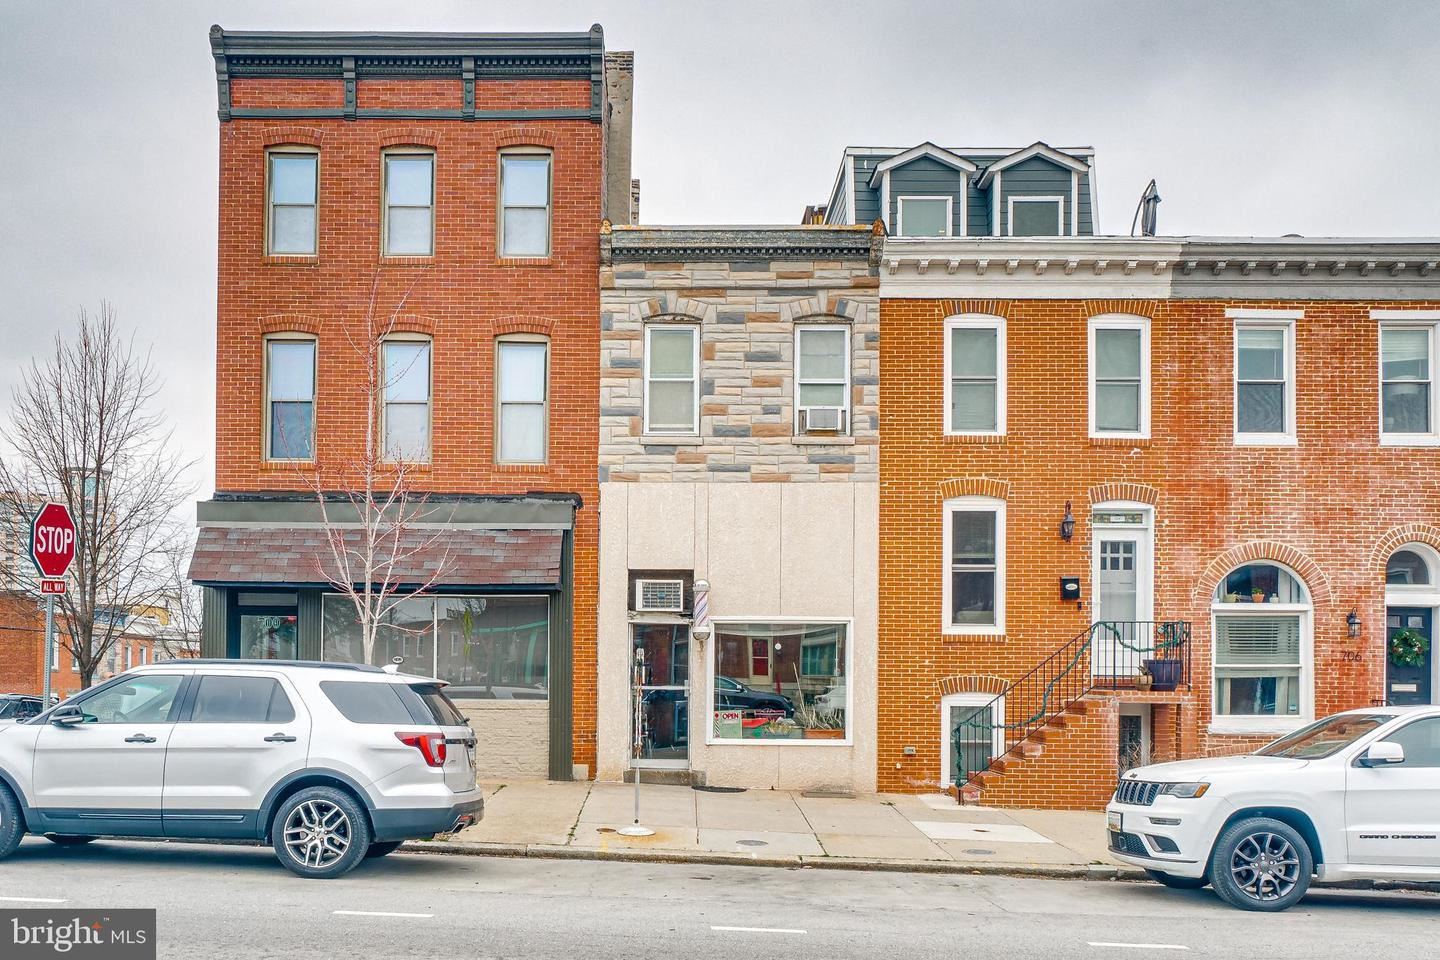 702 E FORT AVE, Baltimore, MD 21230 - MLS#: MDBA543494